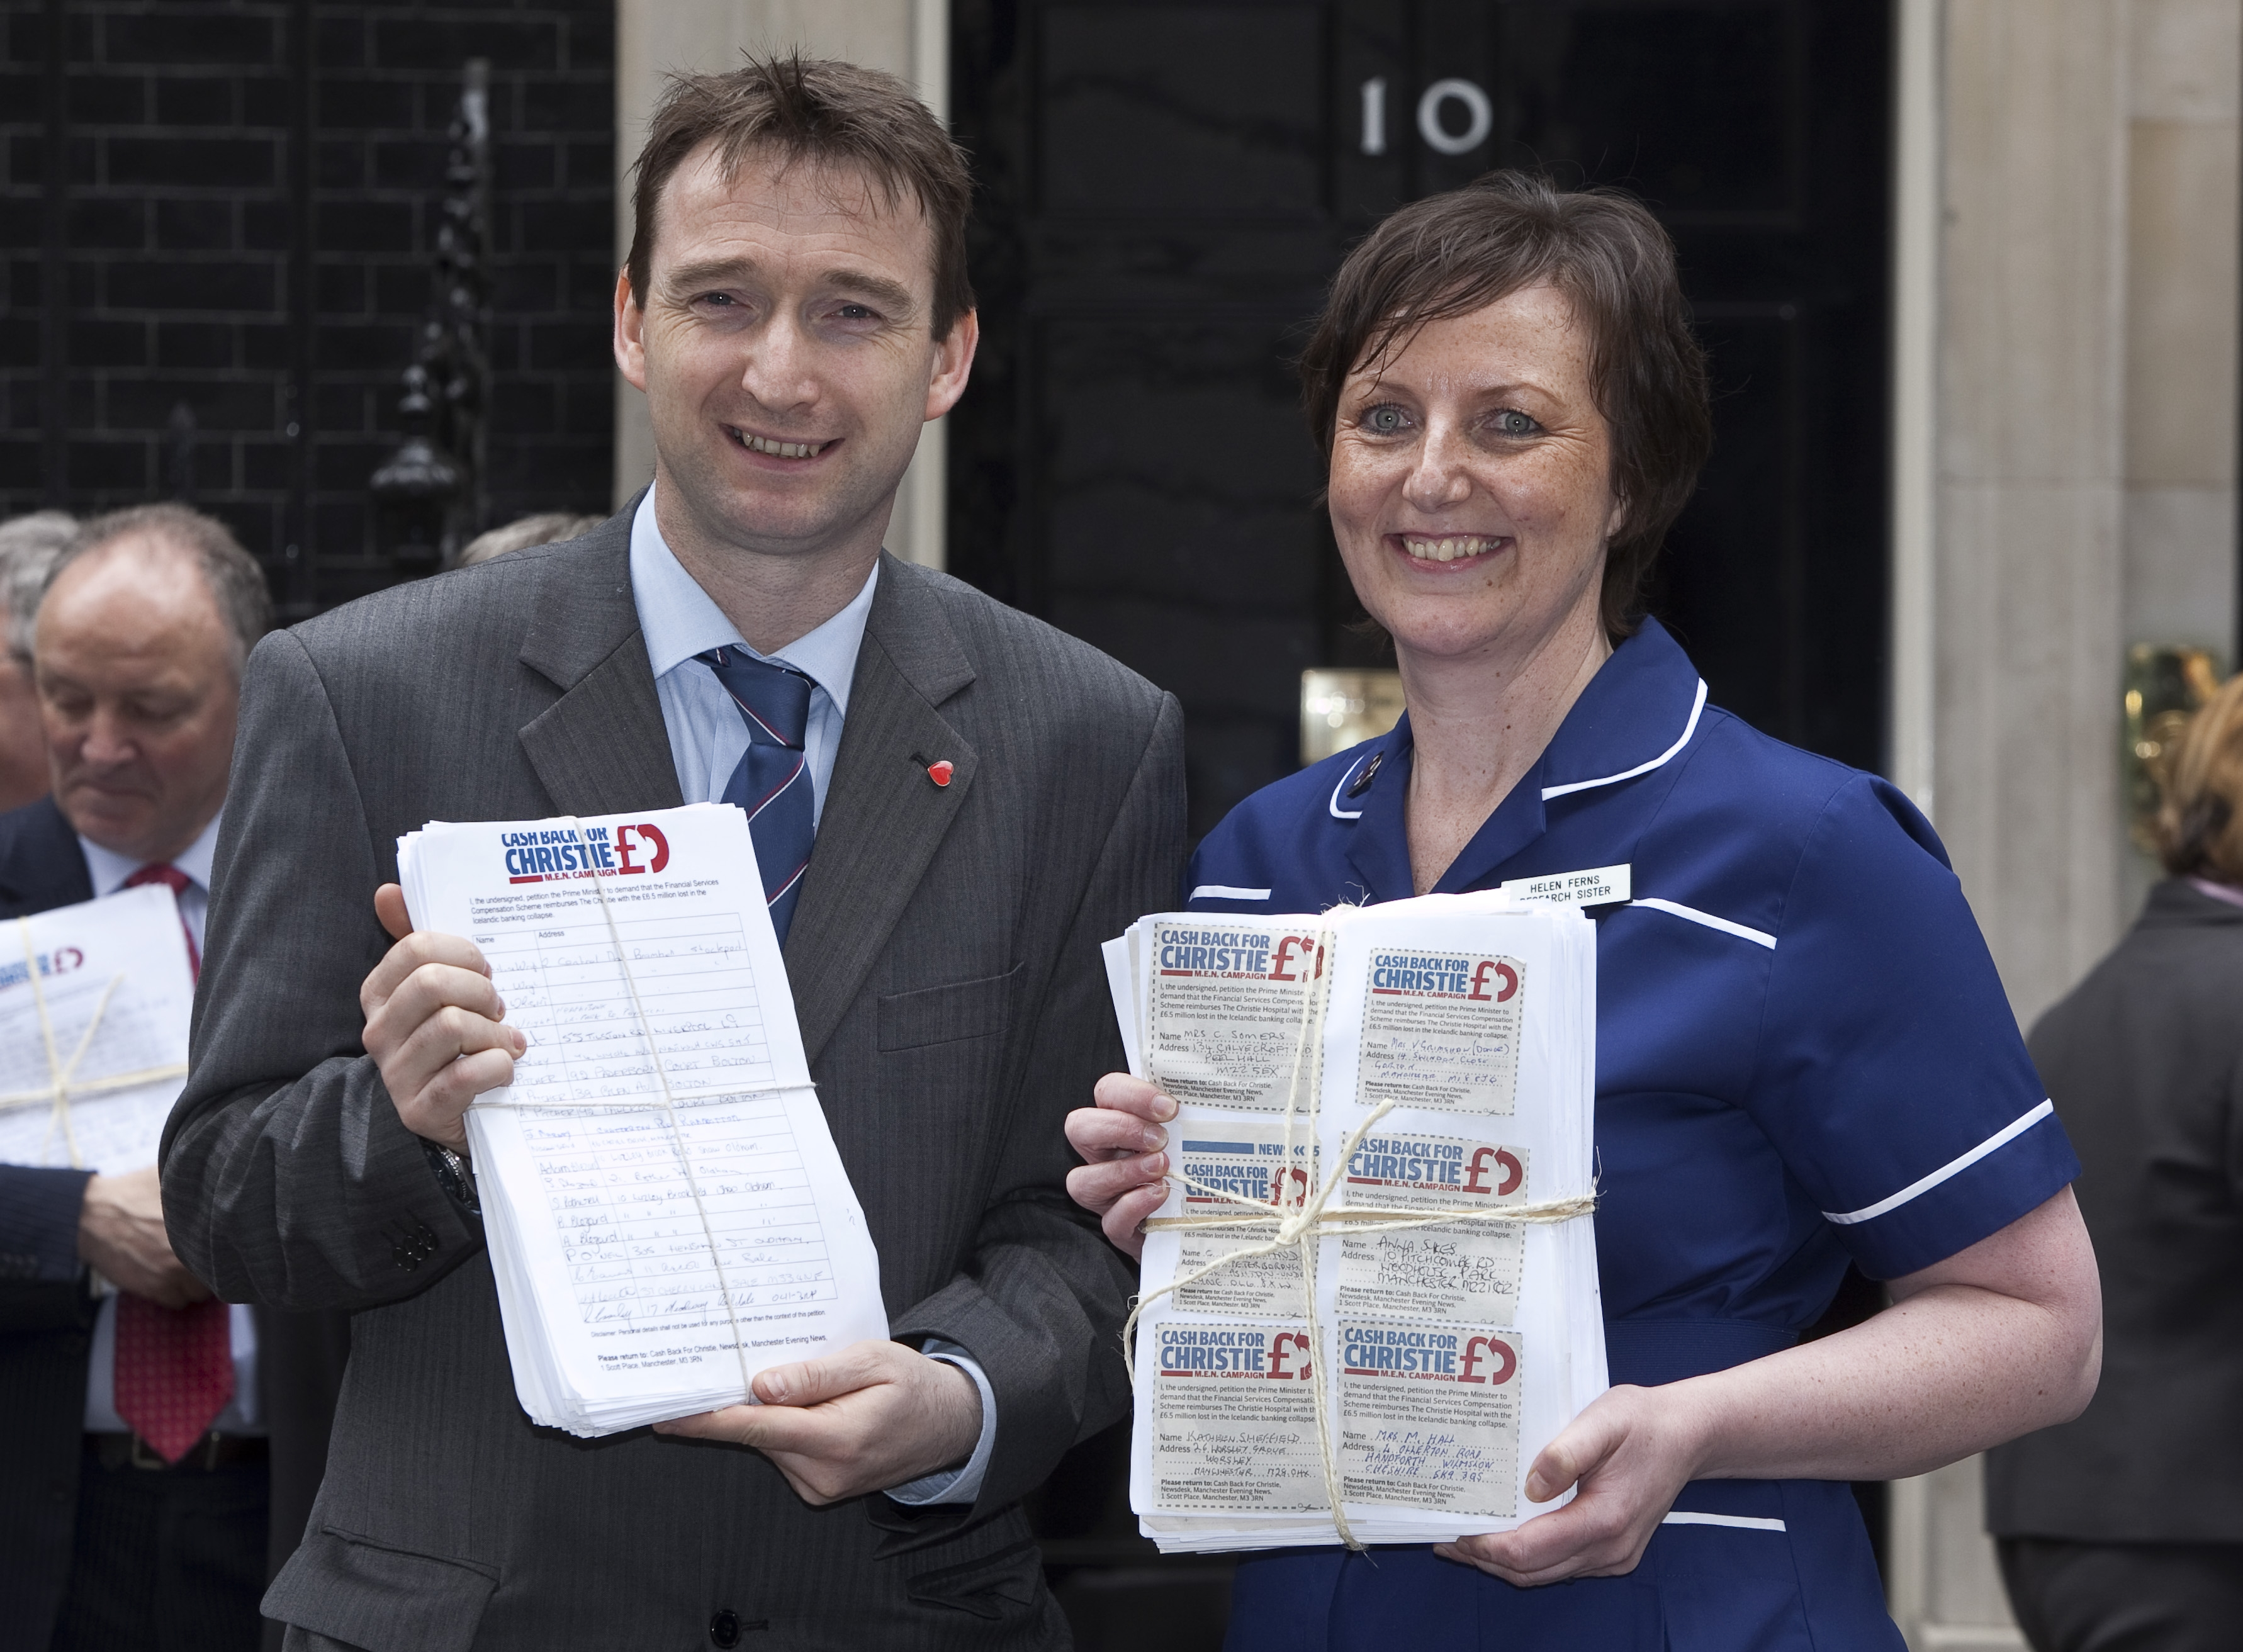 Christie_Petition_10_Downing_Street_John_Leech_and_Helen_Ferns.JPG